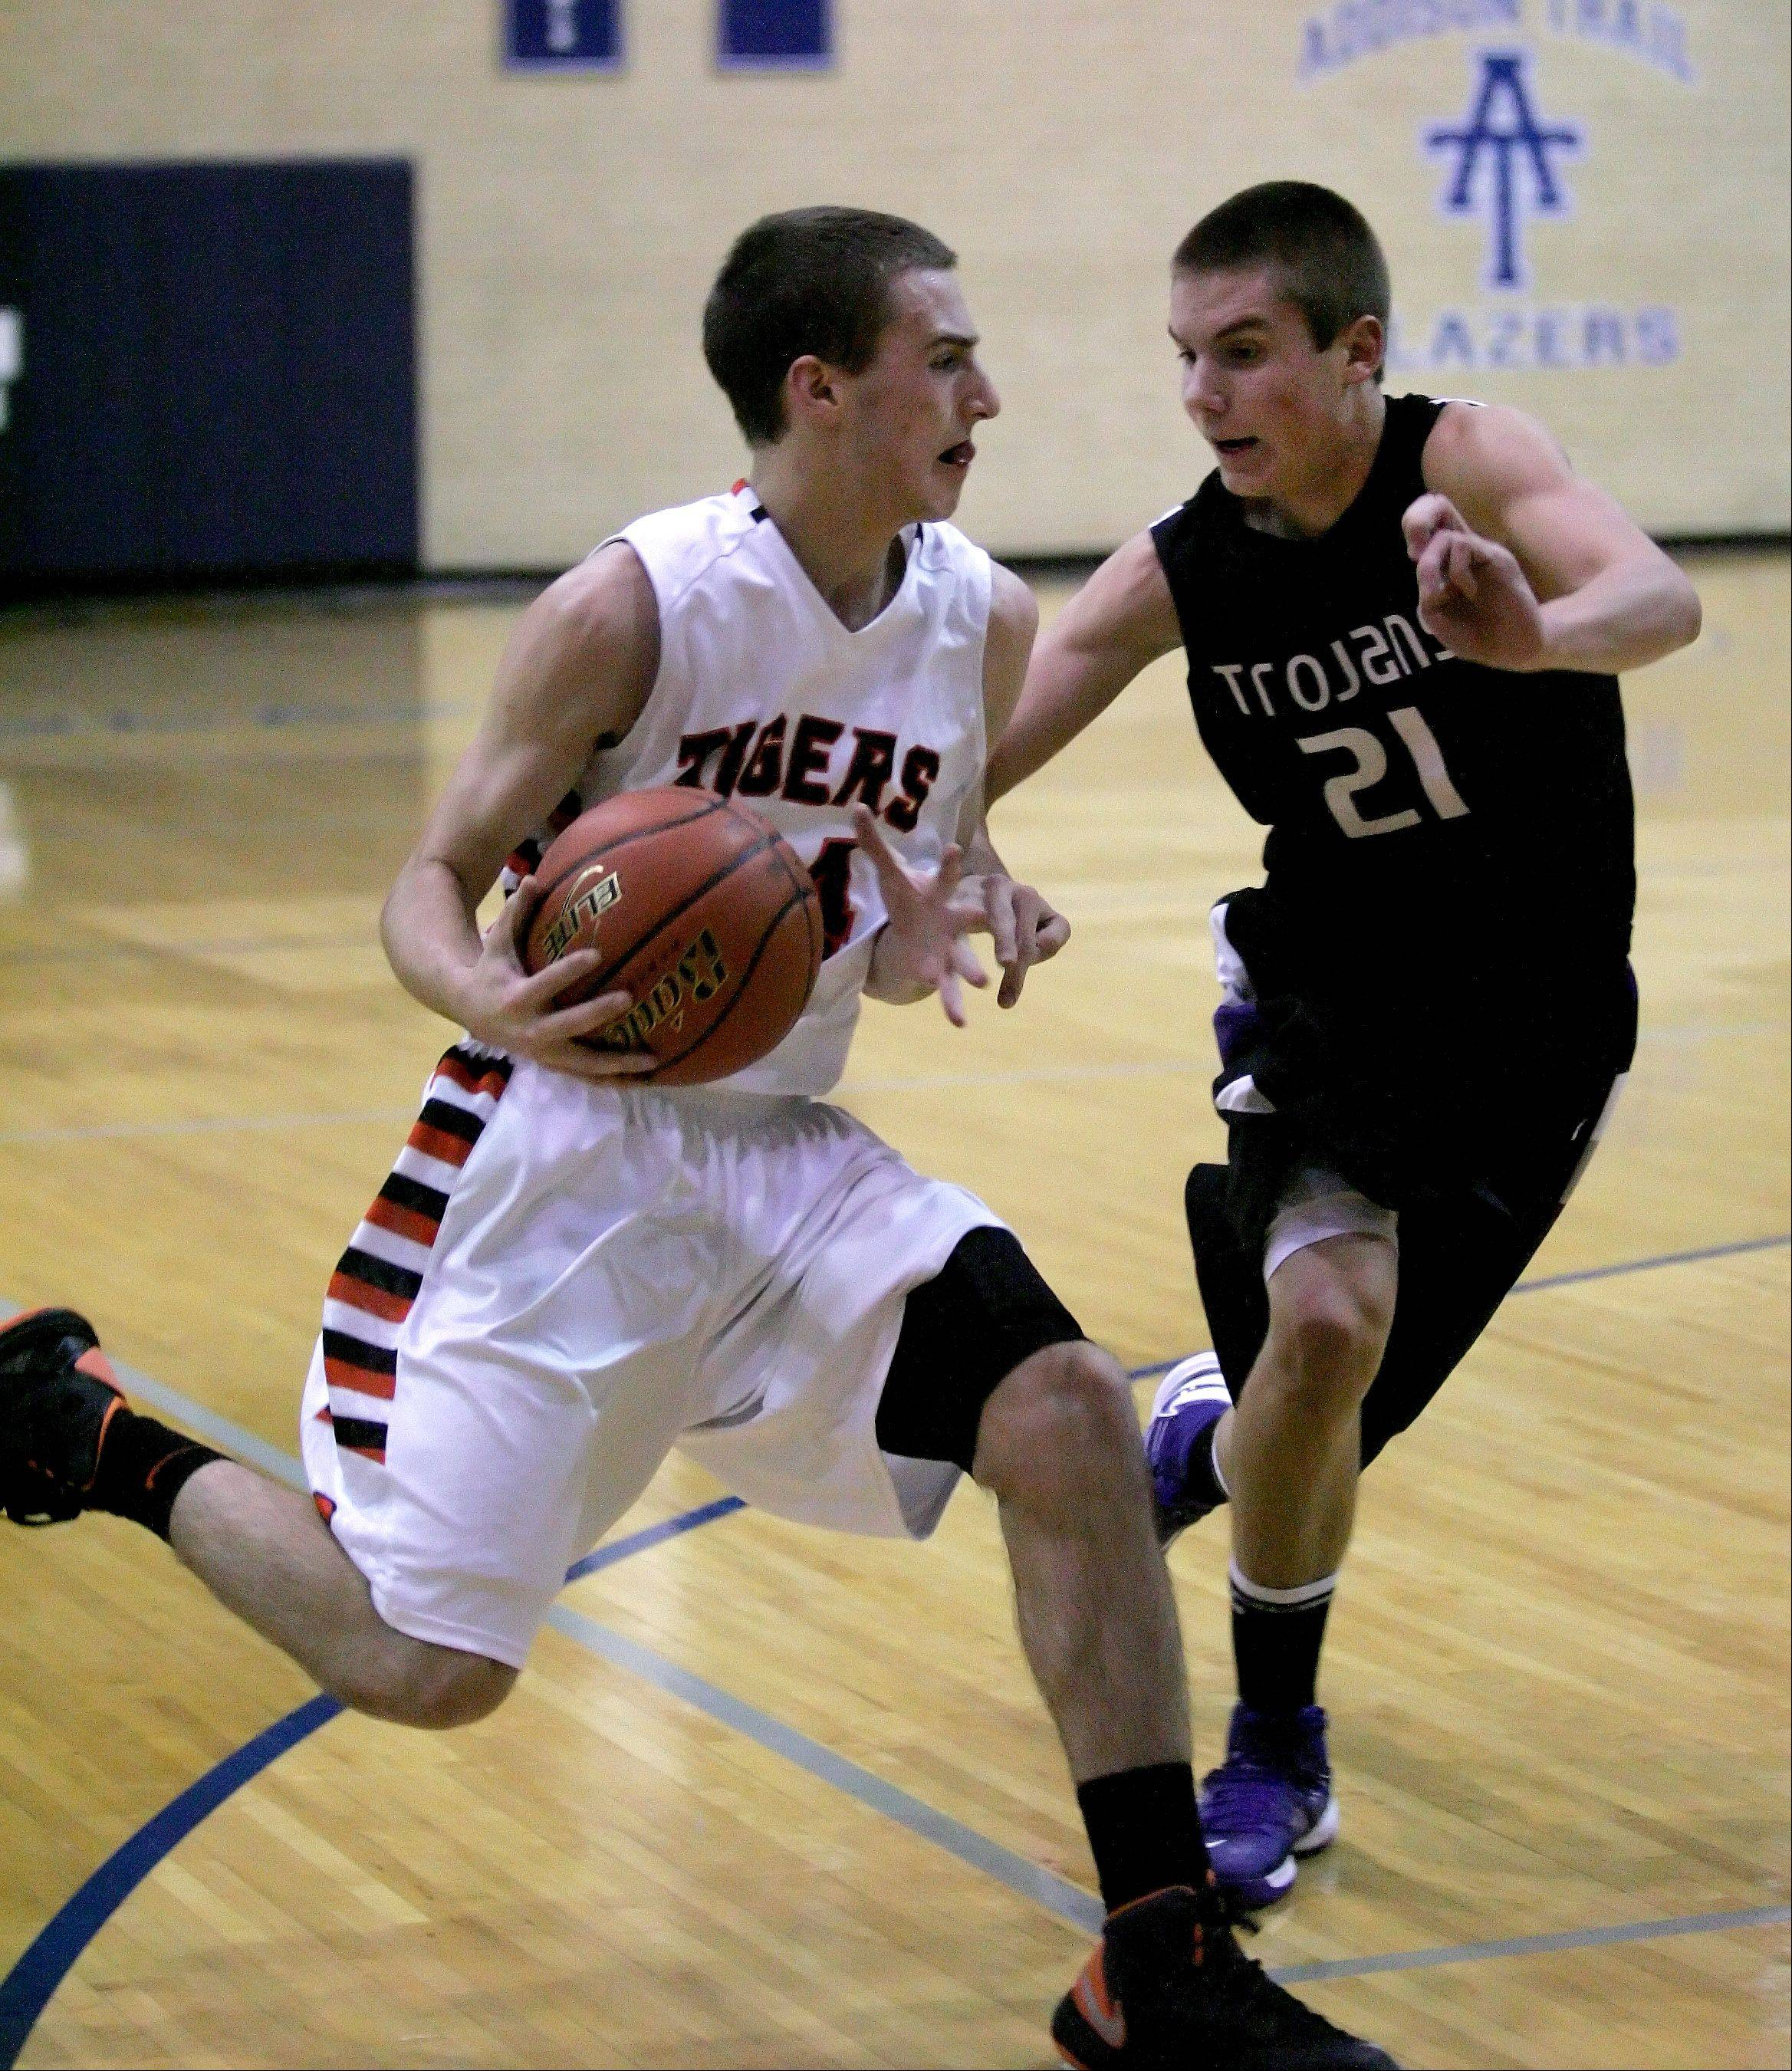 Matt Kienzle of Wheaton Warrenville South, left, moves around David Henson of Downers Grove North in boys basketball action on Tuesday in Addison.